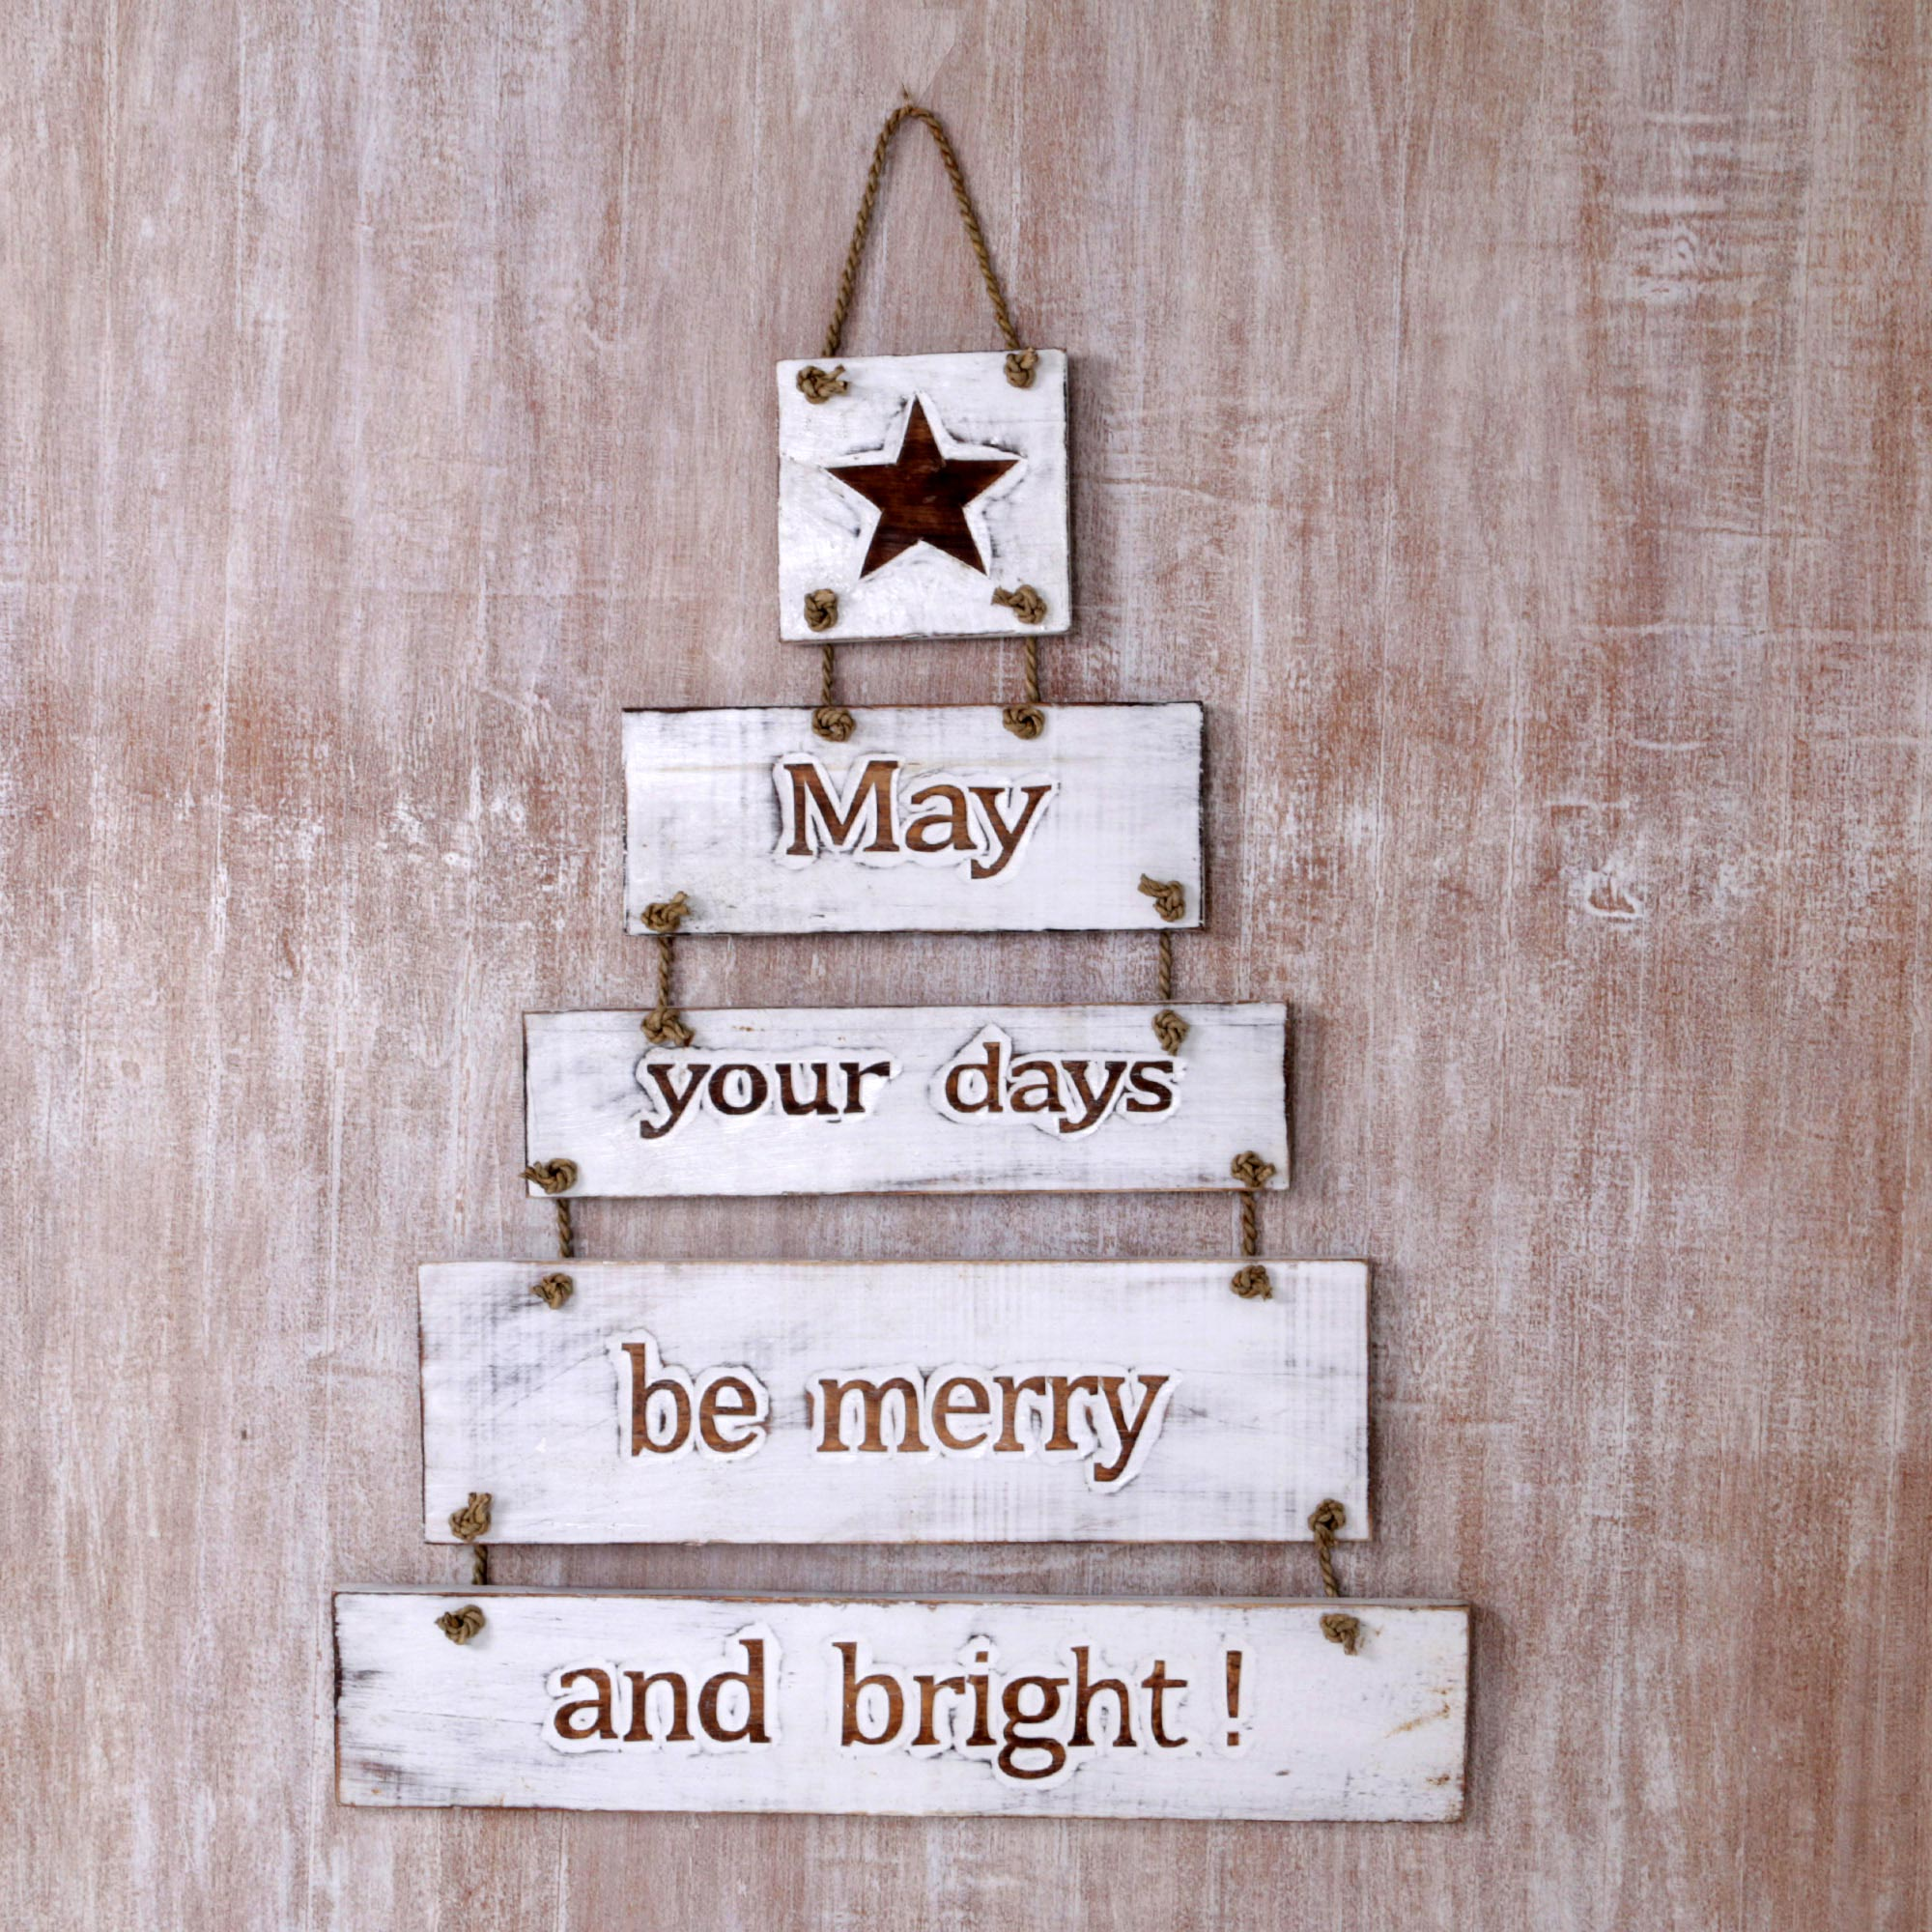 Good Wishes White Wood Multiple Layer Inspirational Sign from Indonesia wall art Get Your Home Ready for the Holidays